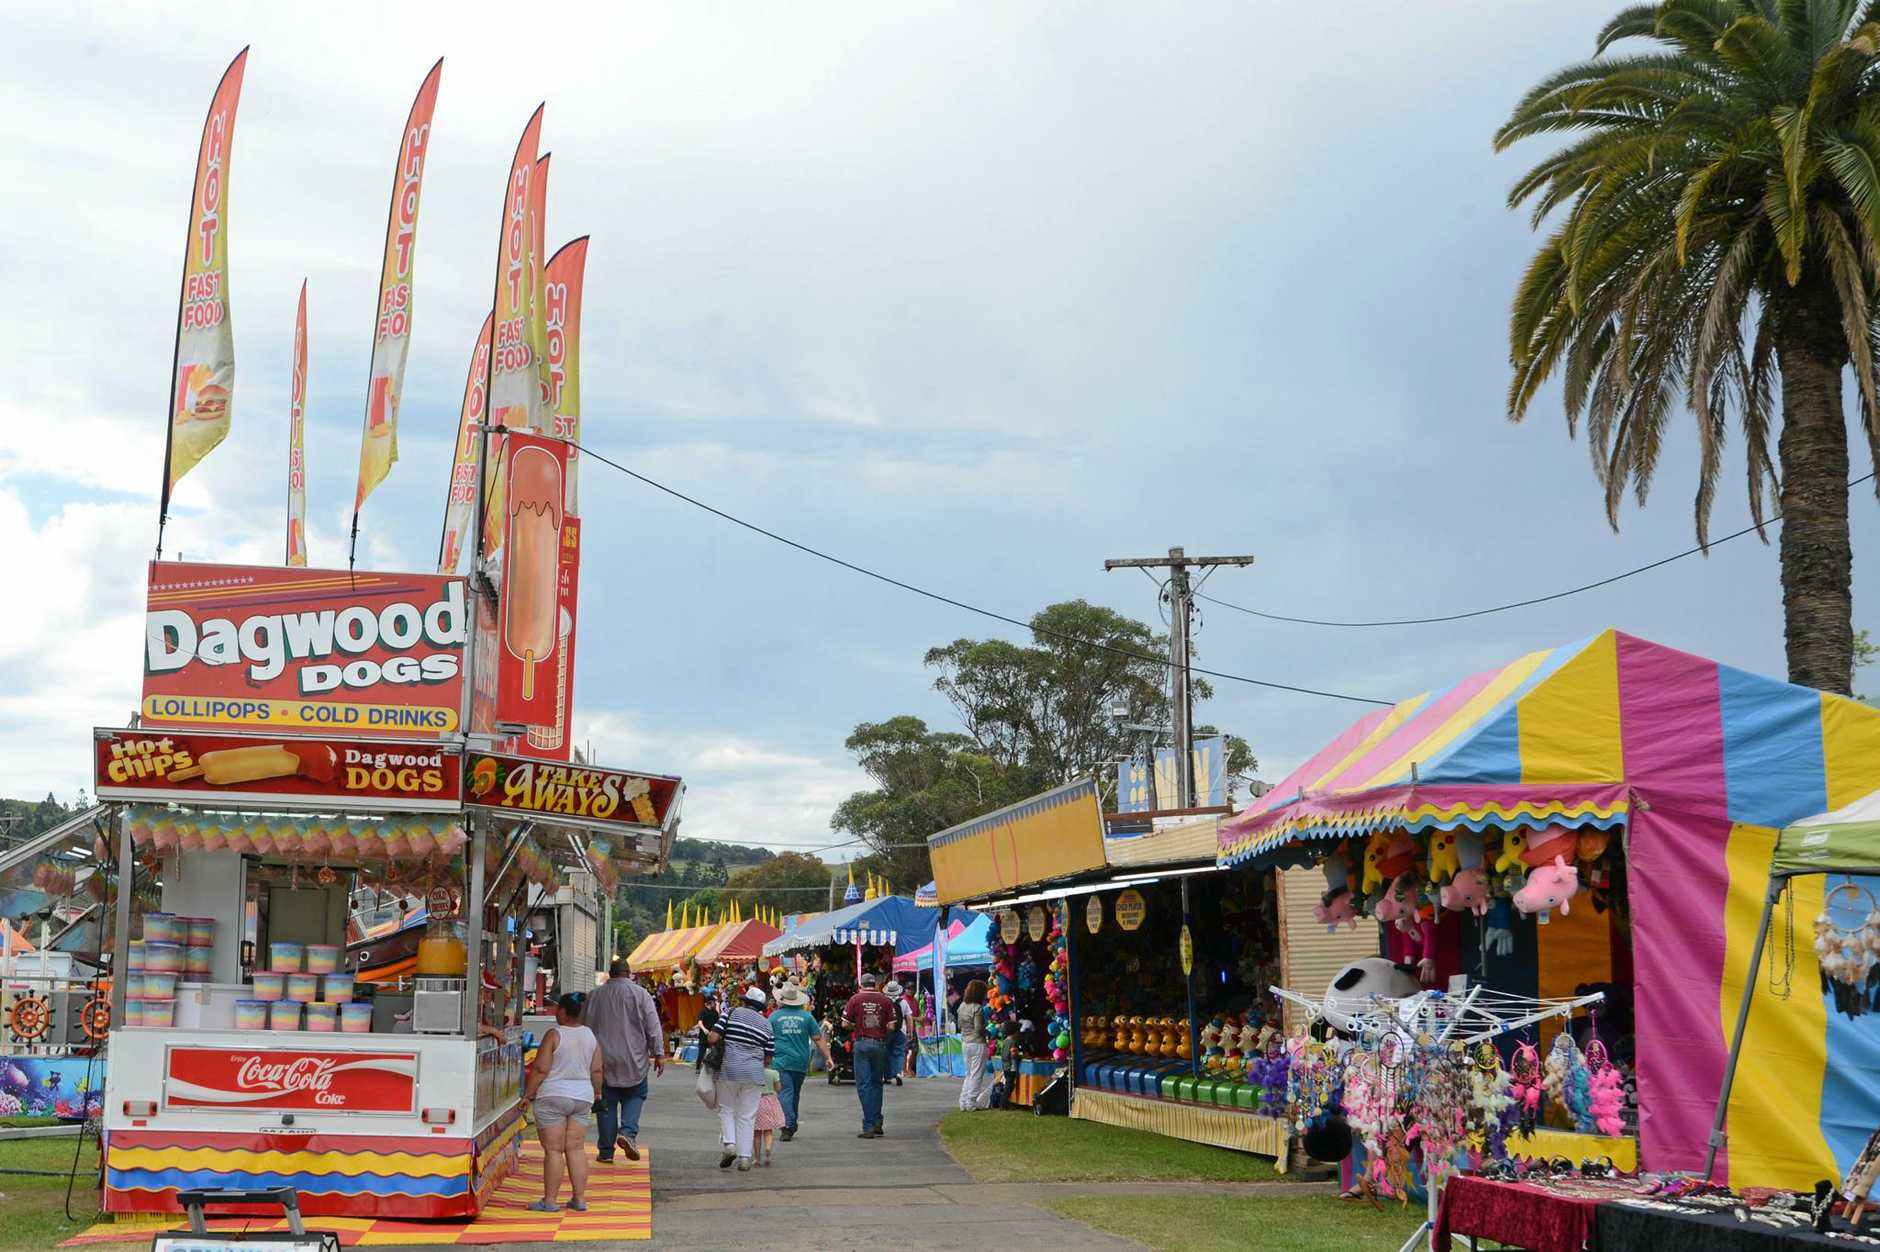 Sideshow Alley at the North Coast National. Photo Cathy Adams / The Northern Star